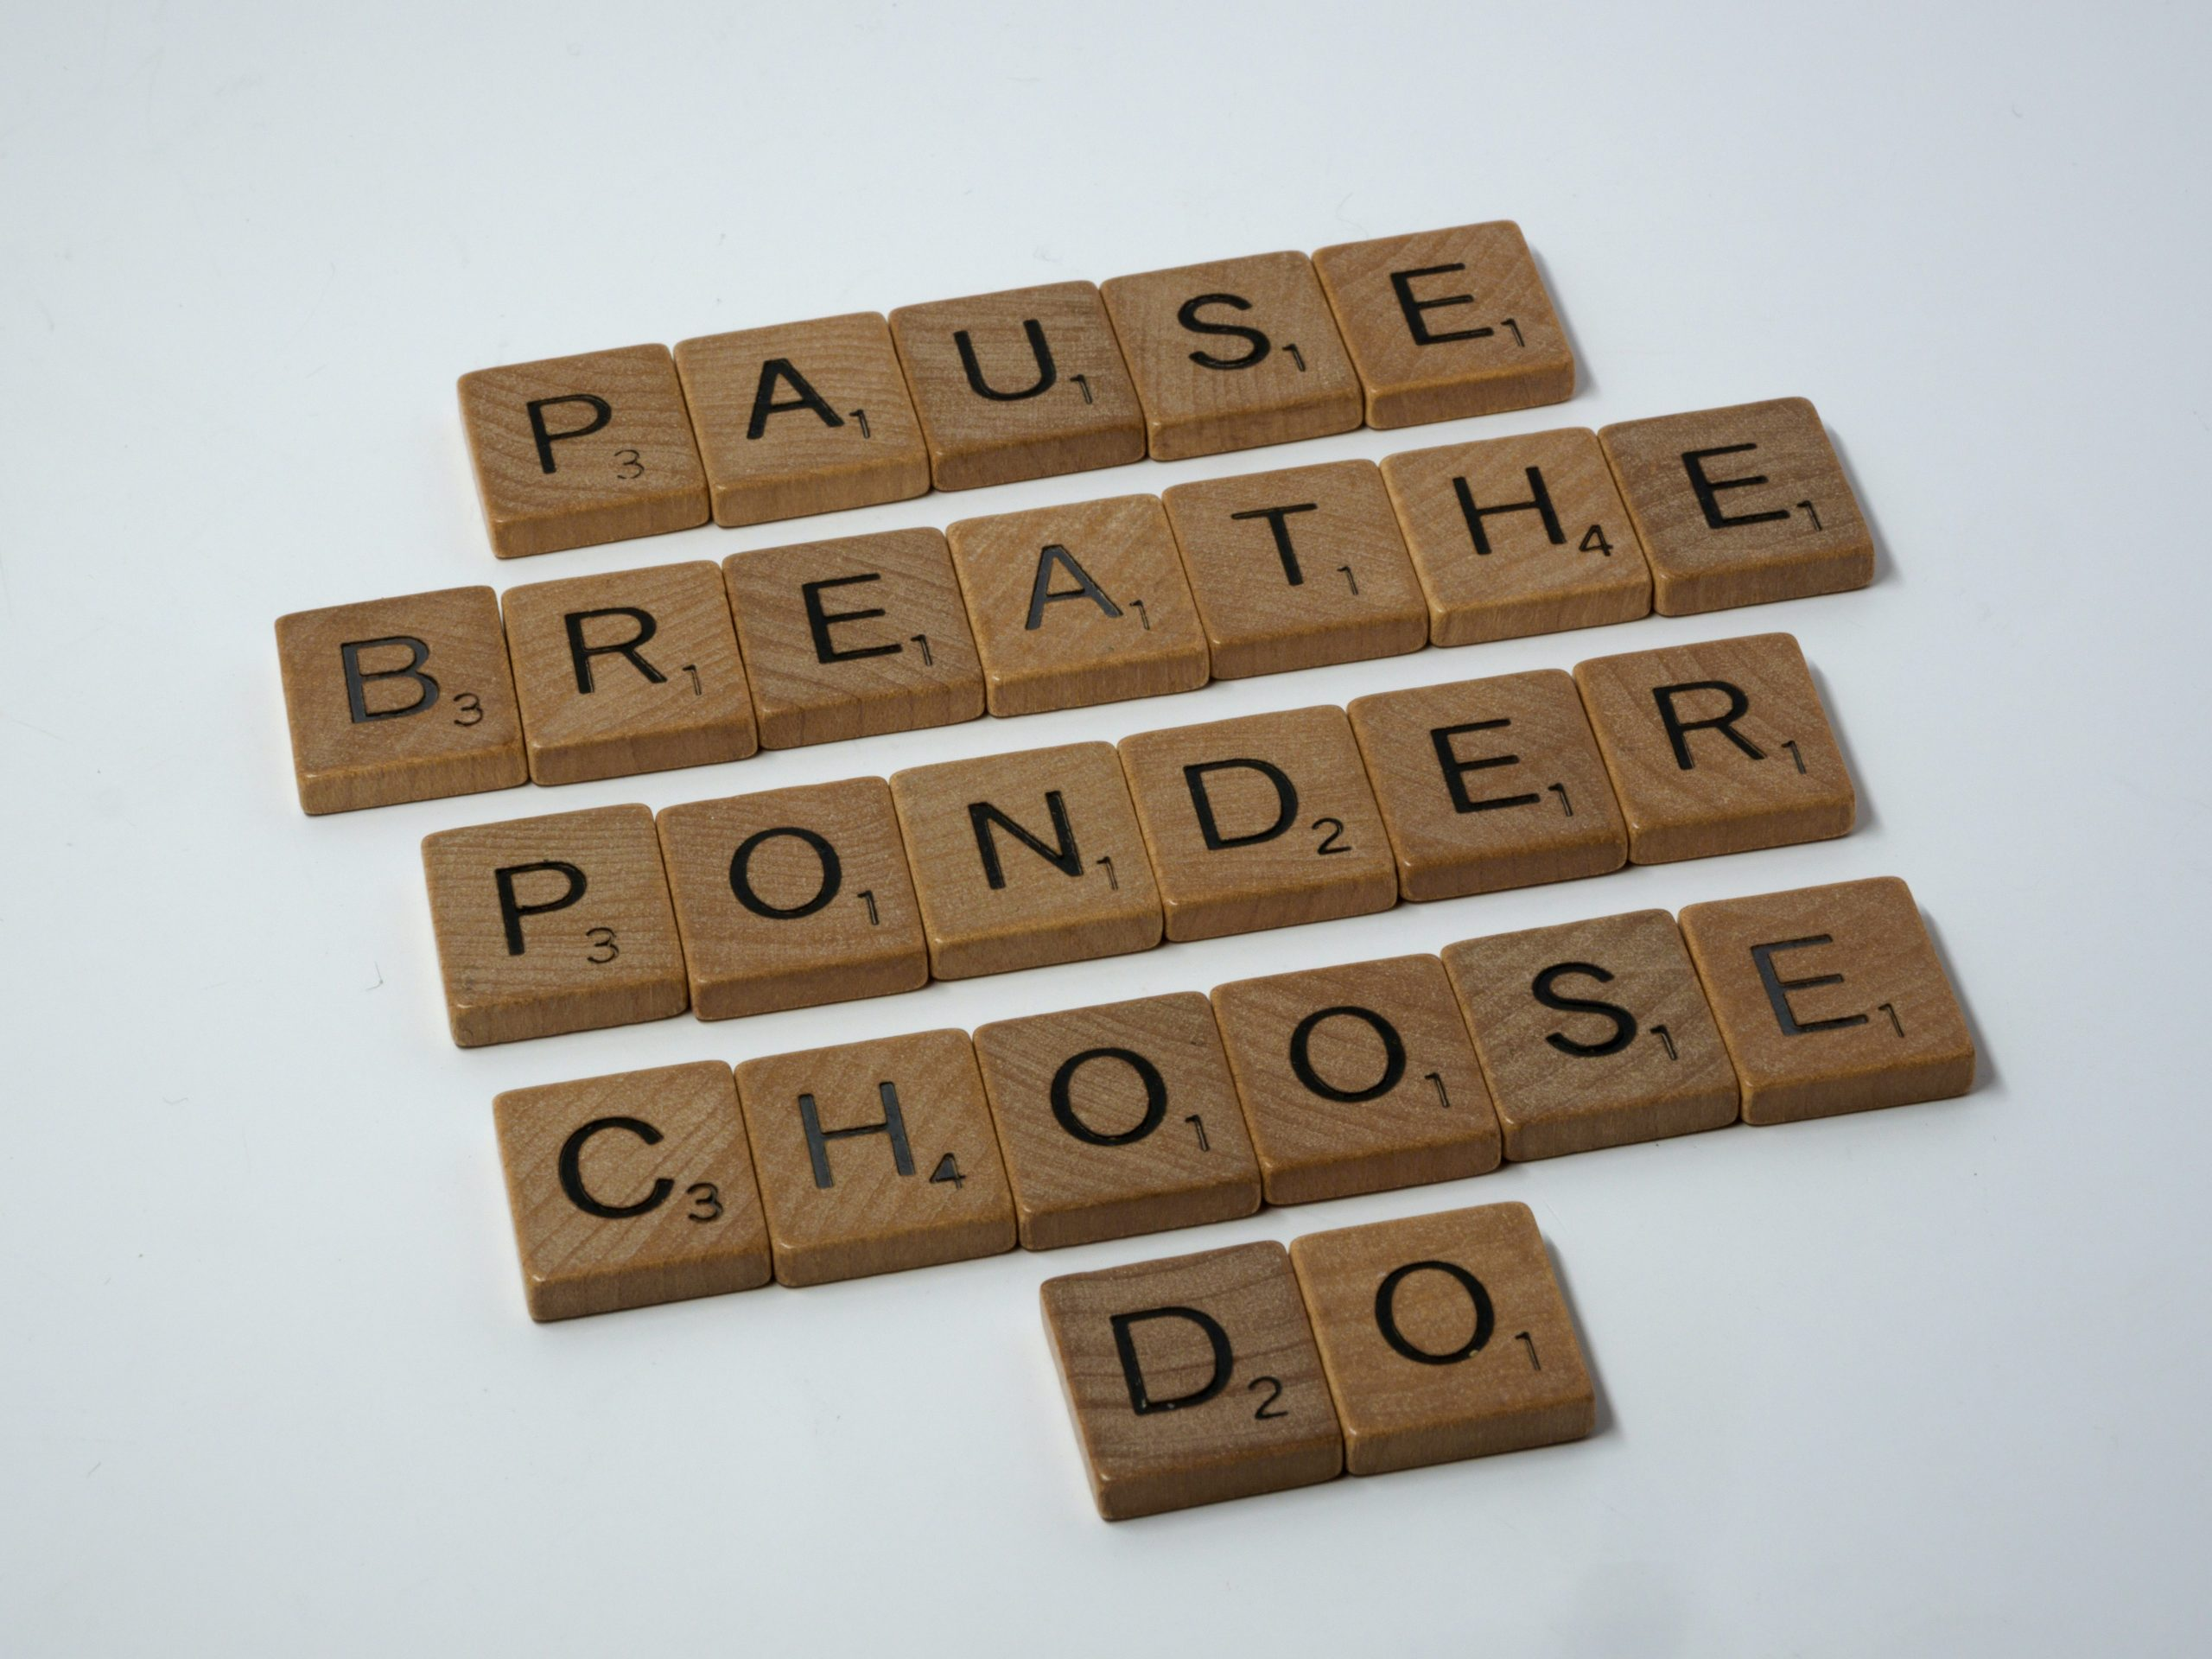 5 words spelled out in scrabble tiles: pause, breathe, ponder, choose, do